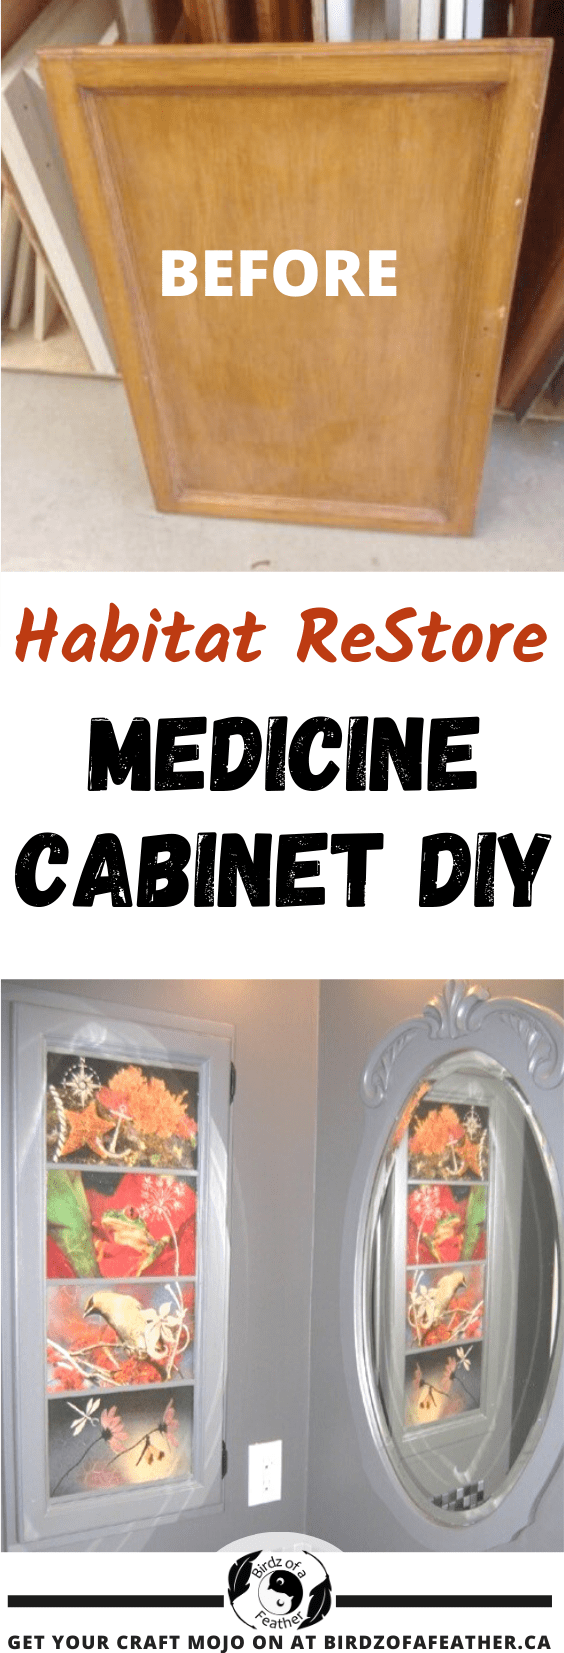 Construct this medicine cabinet DIY using a door from the ReStore! Then snazz up with decoupage! Birdz of a Feather | decoupage | decoupage ideas | medicine cabinet | medicine cabinet makeover | medicine cabinet ideas | picture frame medicine cabinet diy | built in medicine cabinet diy | recessed medicine cabinet diy | bathroom decor DIY | bathroom decor diy ideas | bathroom decor ideas | habitat restore | habitat restore projects | habitat restore projects DIY | medicine cabinet diy